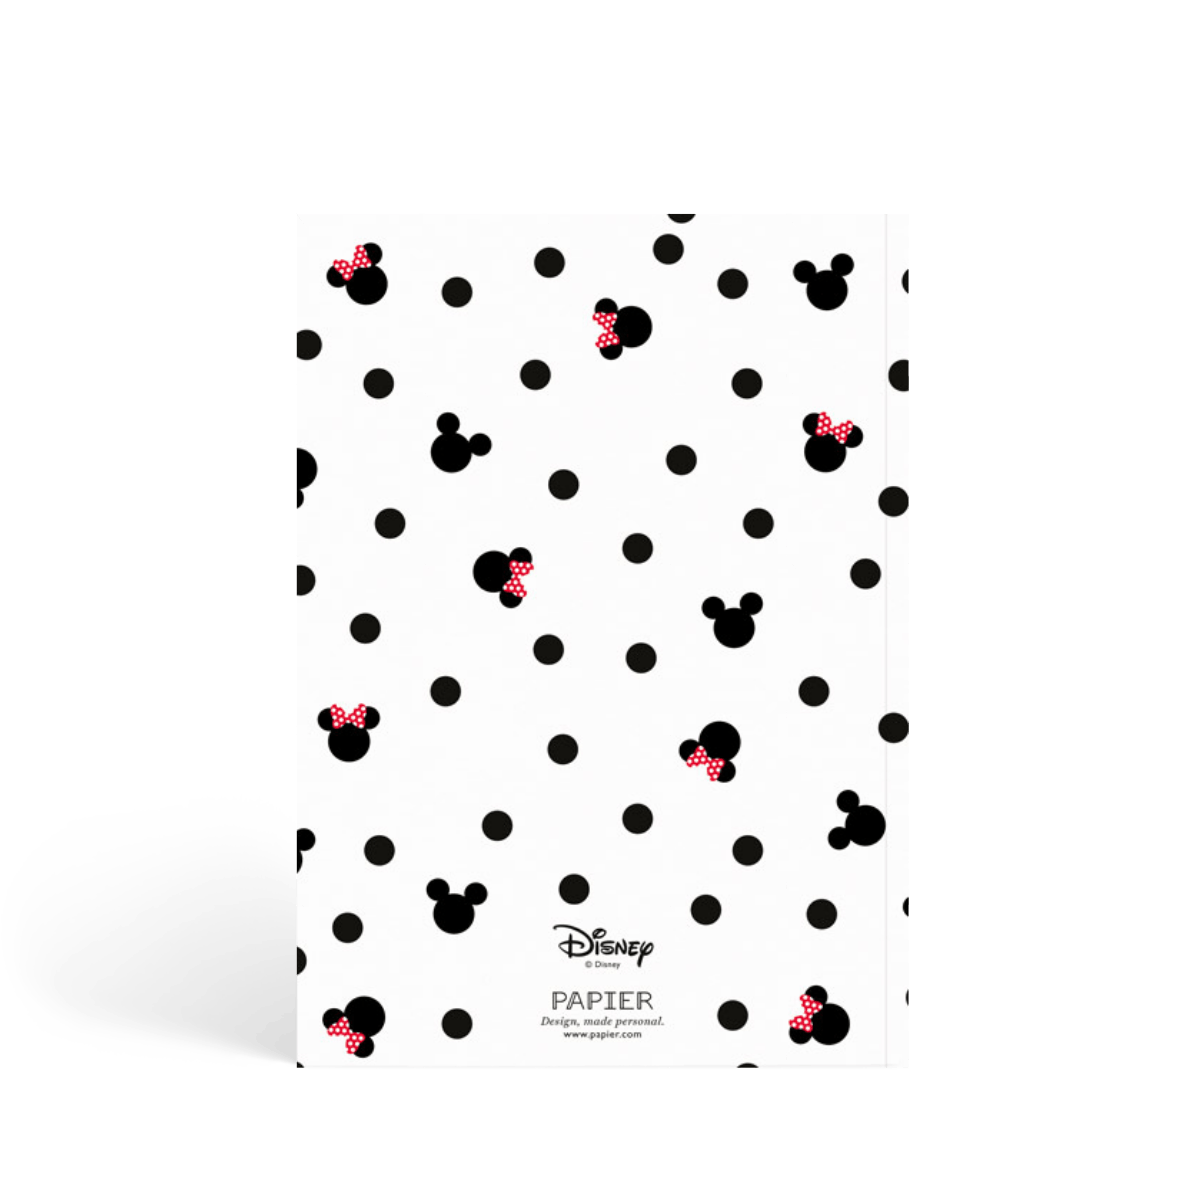 Https%3a%2f%2fwww.papier.com%2fproduct image%2f41961%2f5%2fmickey minnie mouse 10695 arriere 1532359817.png?ixlib=rb 1.1